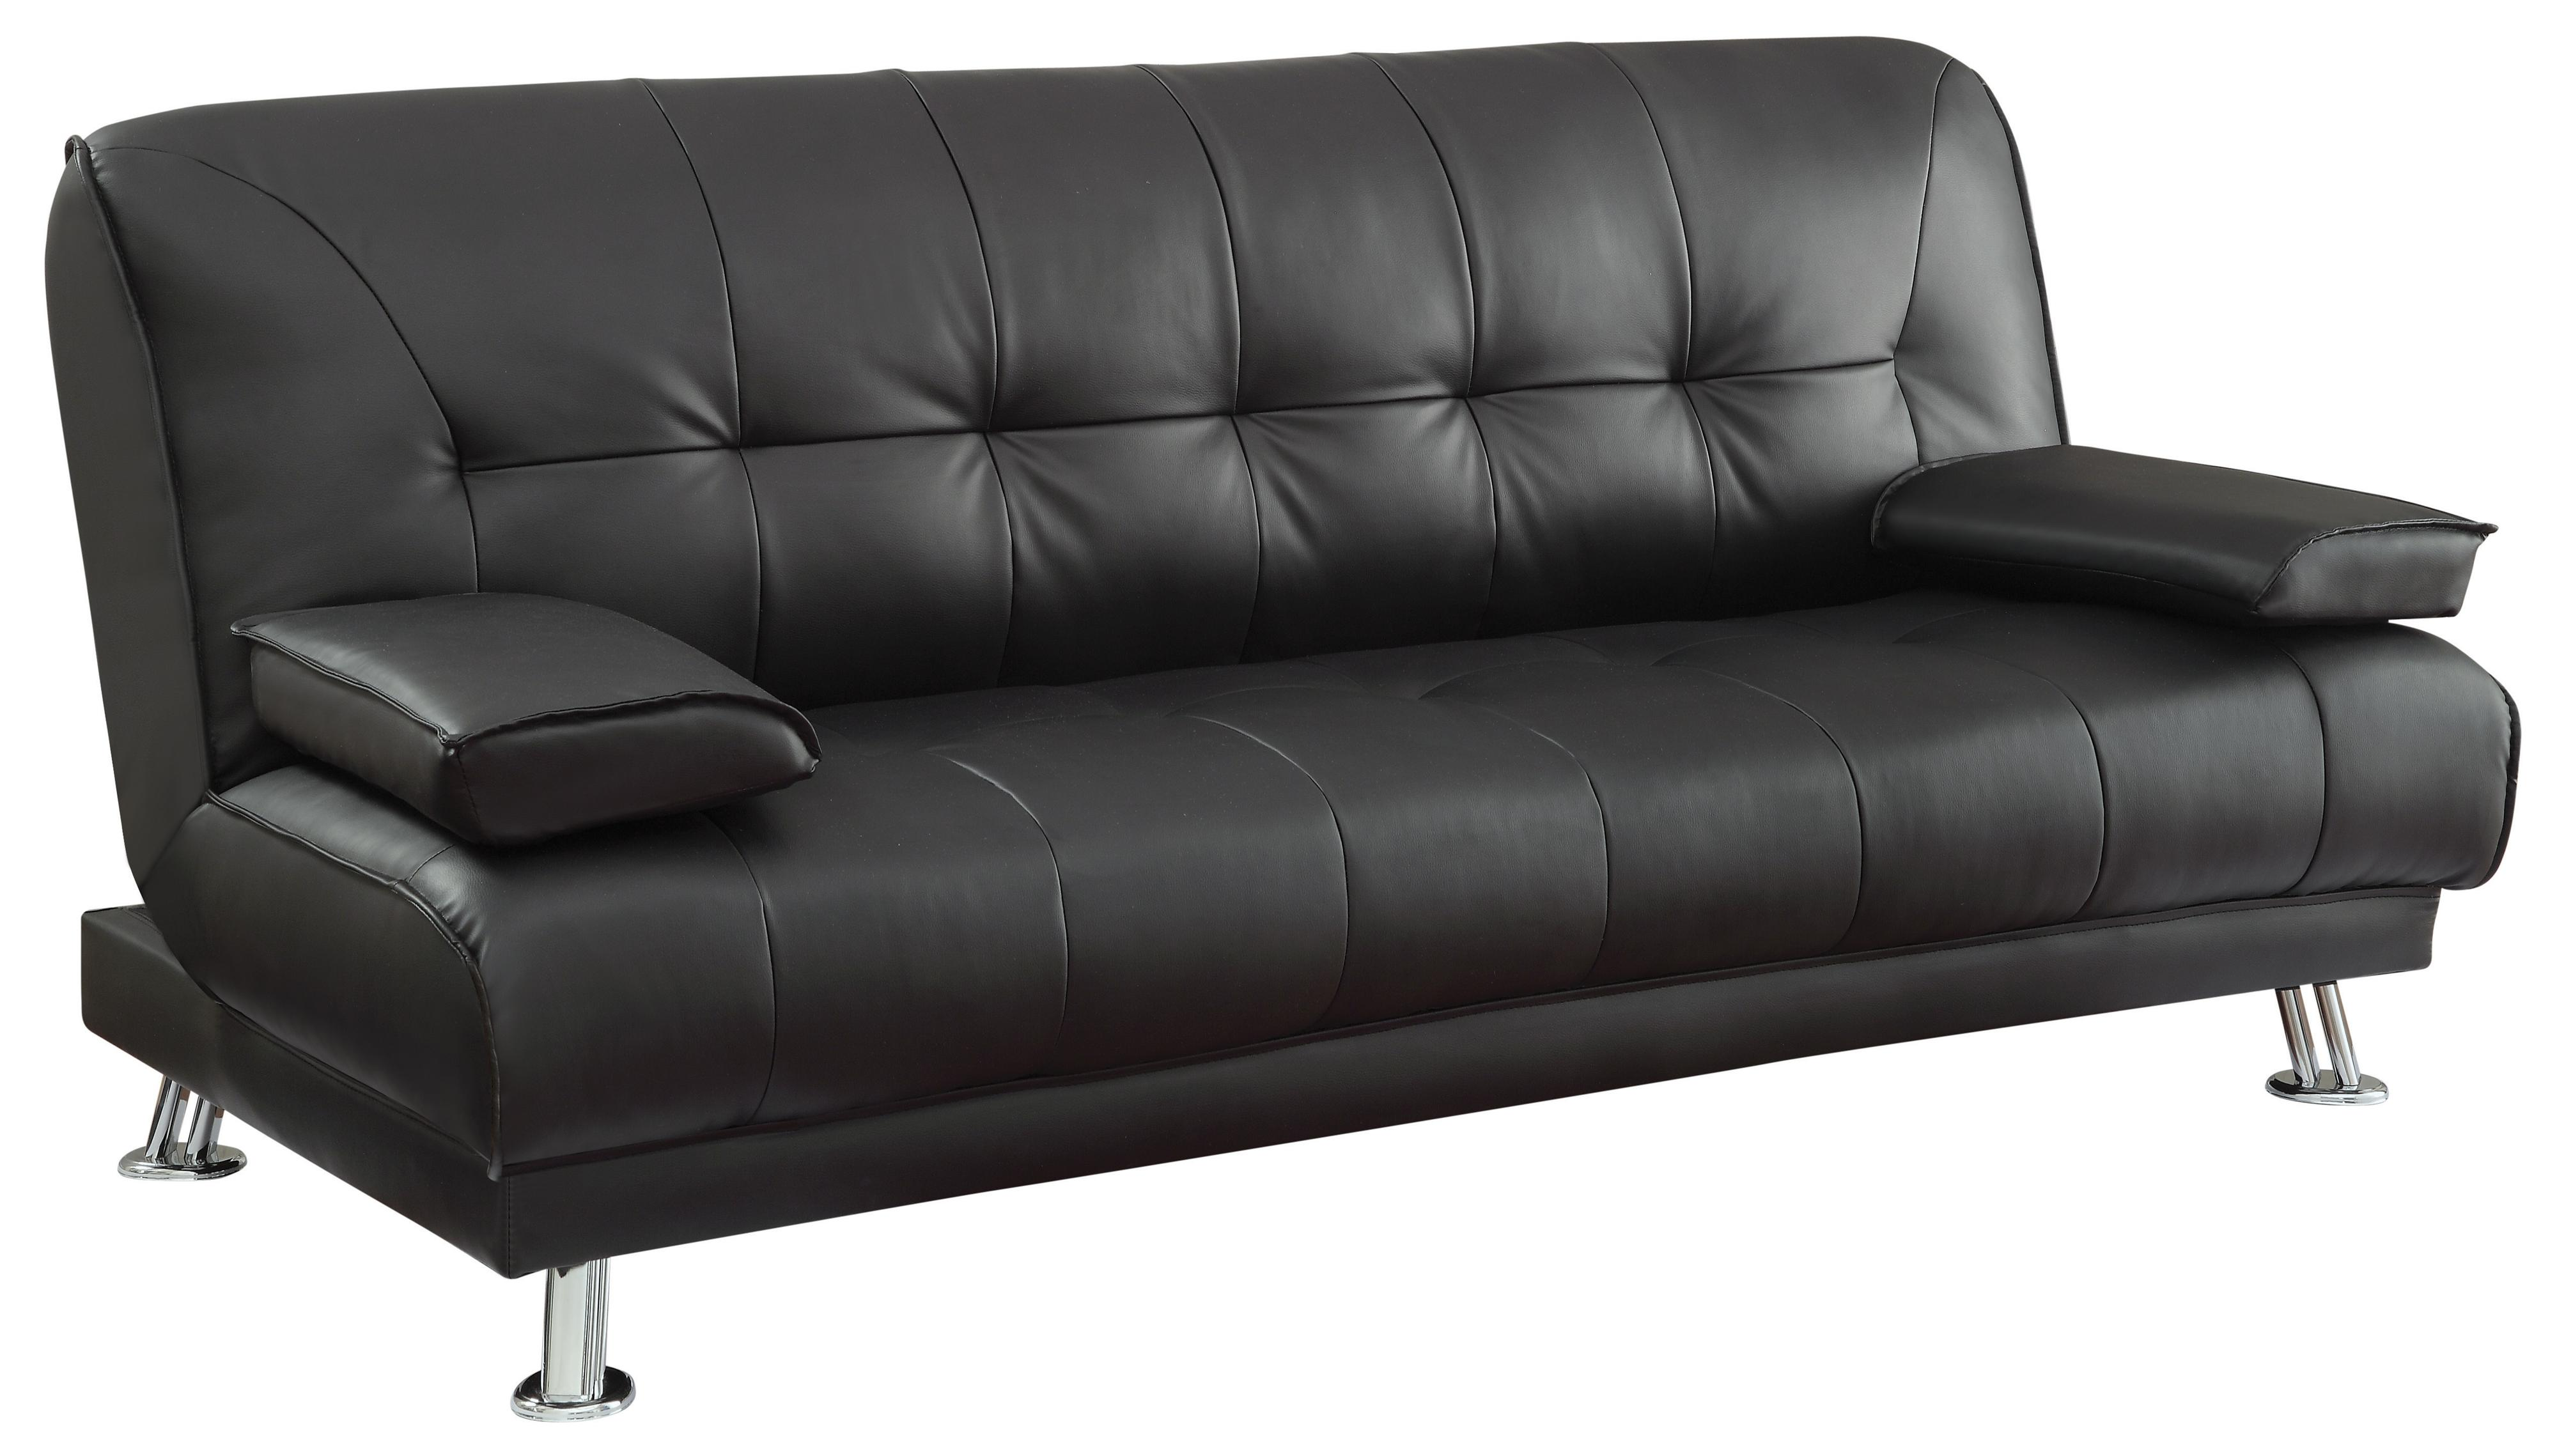 sofa deals nj freedom copenhagen size coaster beds and futons faux leather convertible